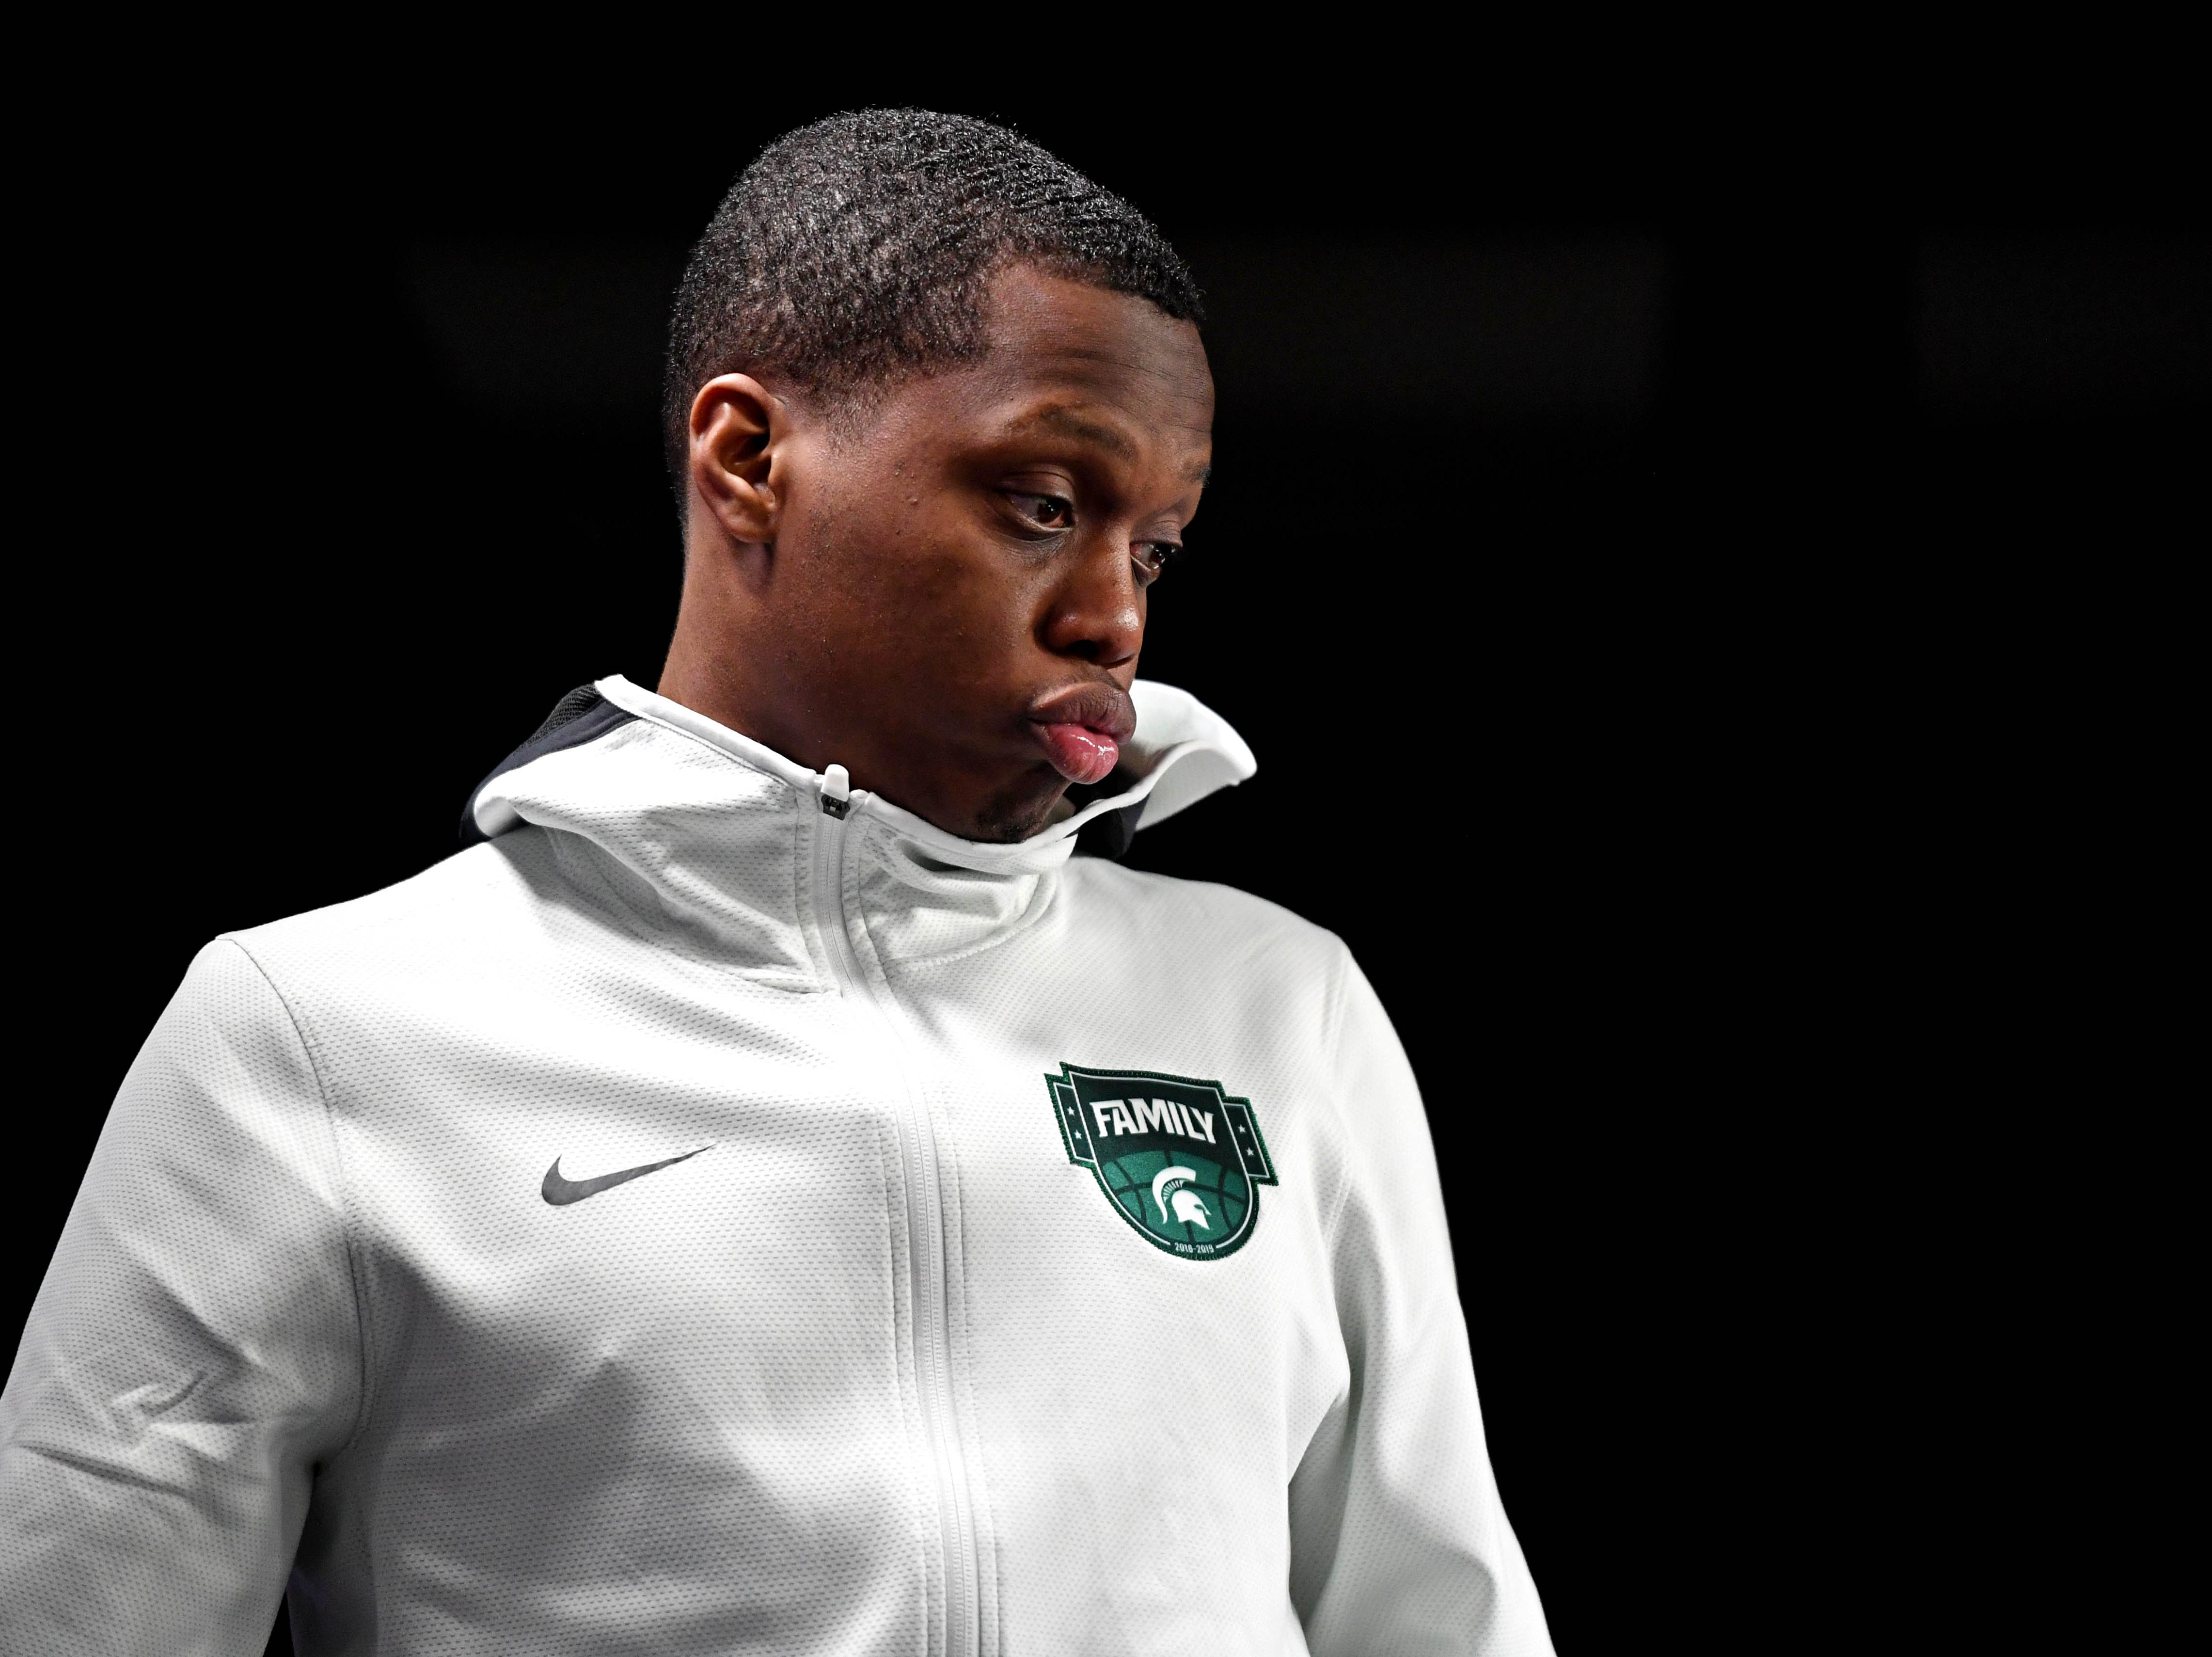 Apr 6, 2019; Minneapolis, MN, USA; Michigan State Spartans guard Cassius Winston (5) during a press conference after the game the Texas Tech Red Raiders in the semifinals of the 2019 men's Final Four at US Bank Stadium. Mandatory Credit: Shanna Lockwood-USA TODAY Sports